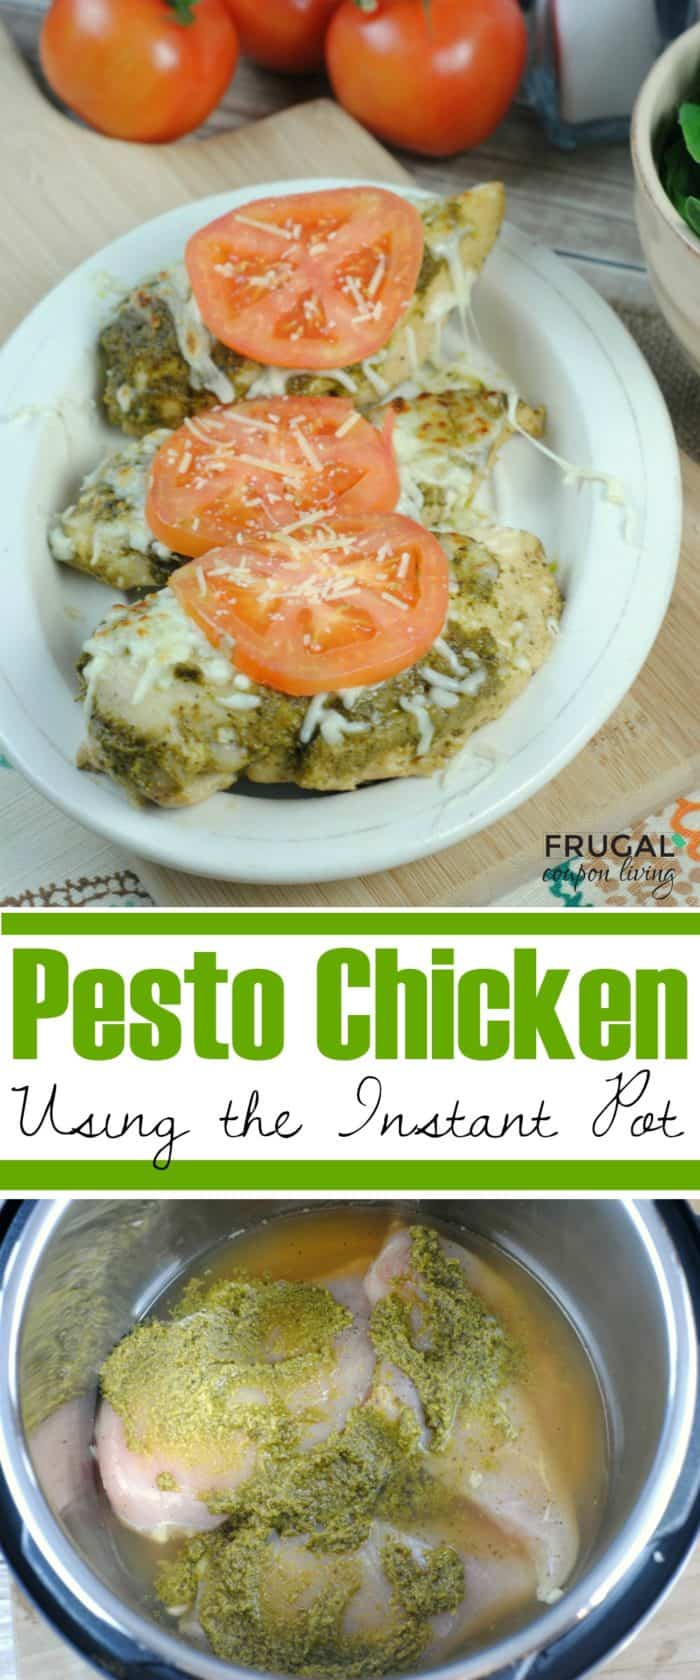 Instant Pot Pesto Chicken Recipe